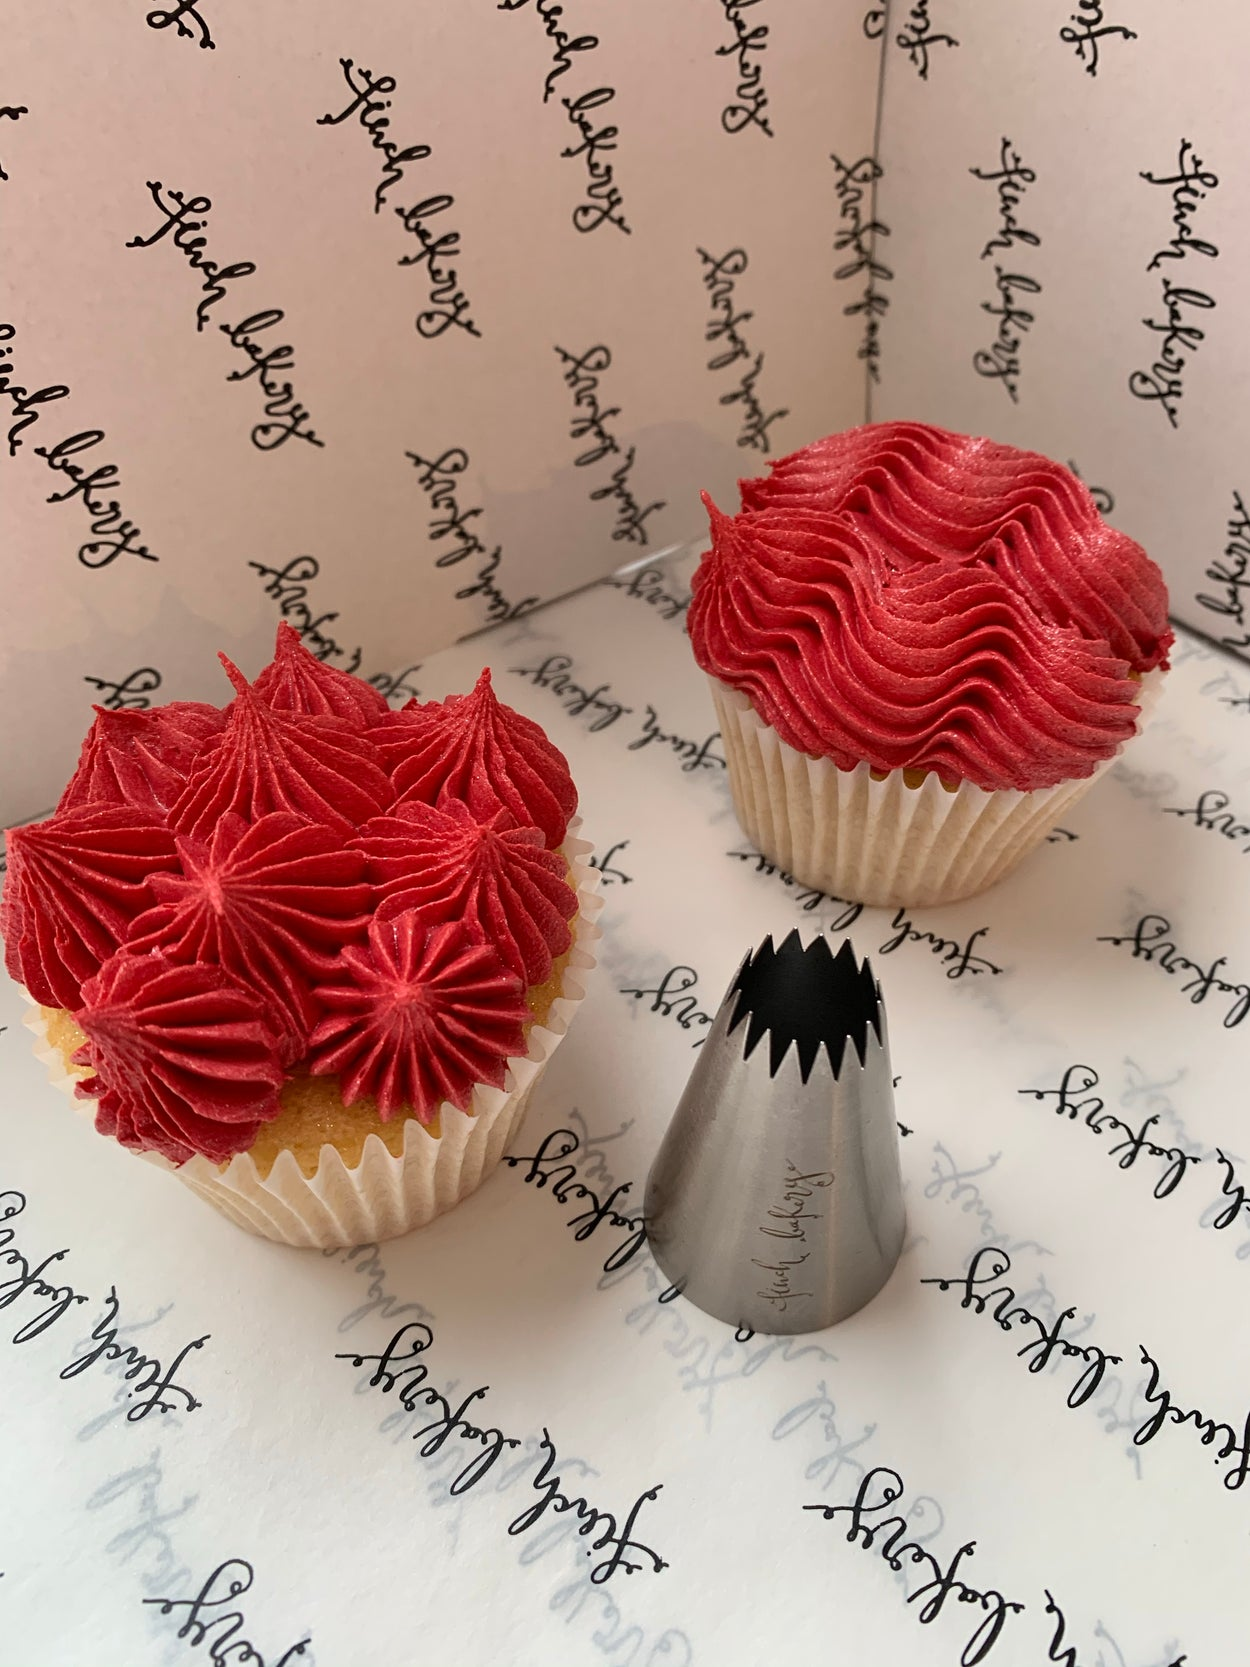 12 Piece Nozzle Set 🧁